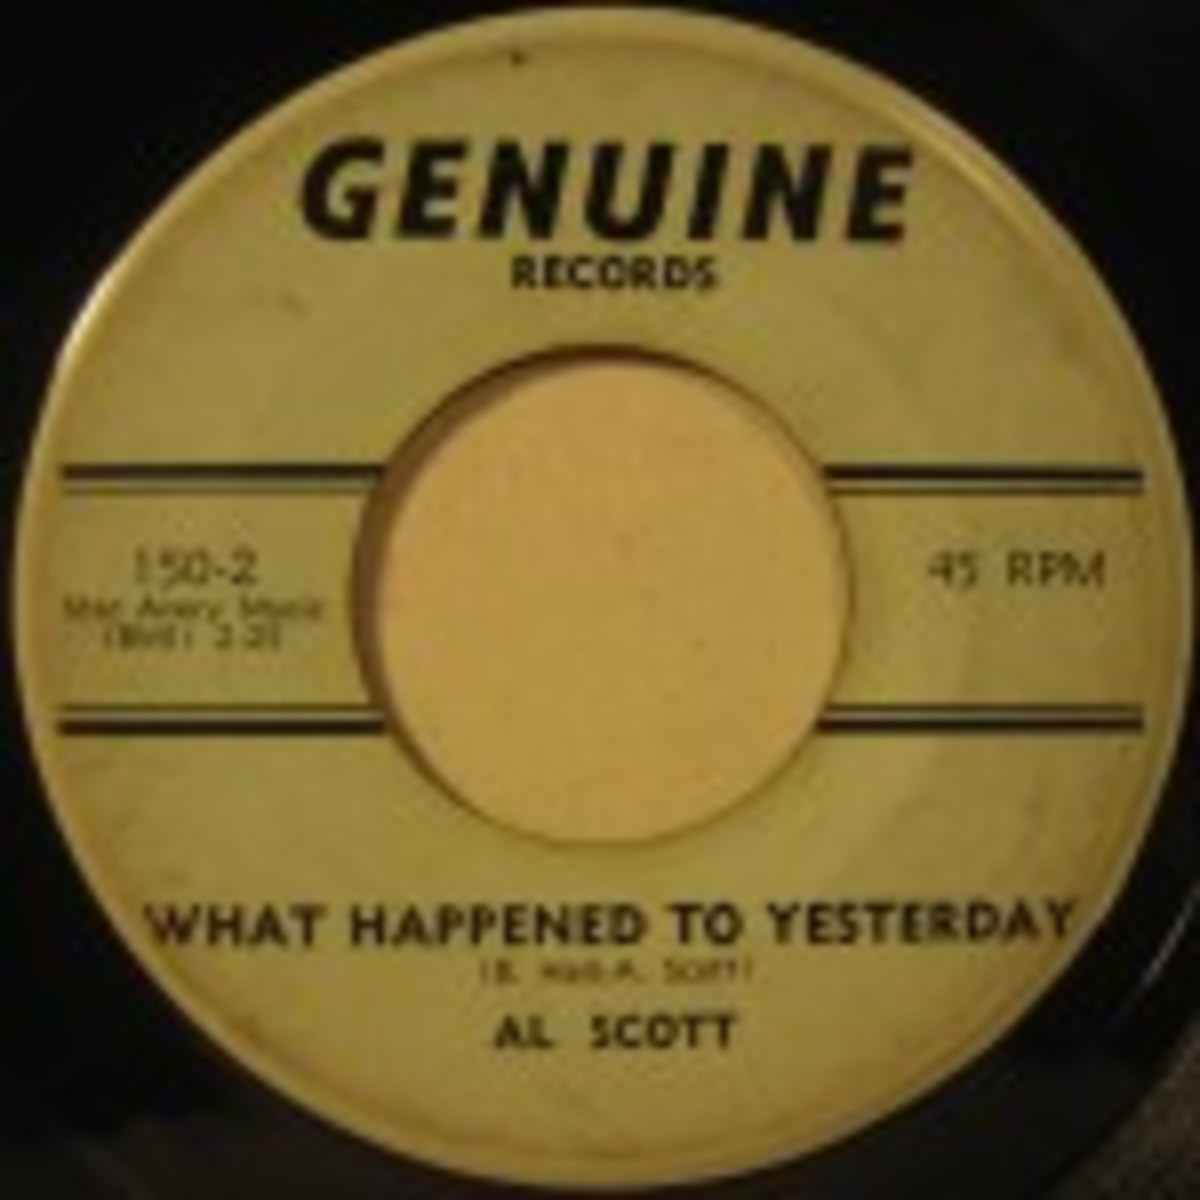 Al Scott What Happened To Yesterday b/w You're Too Good